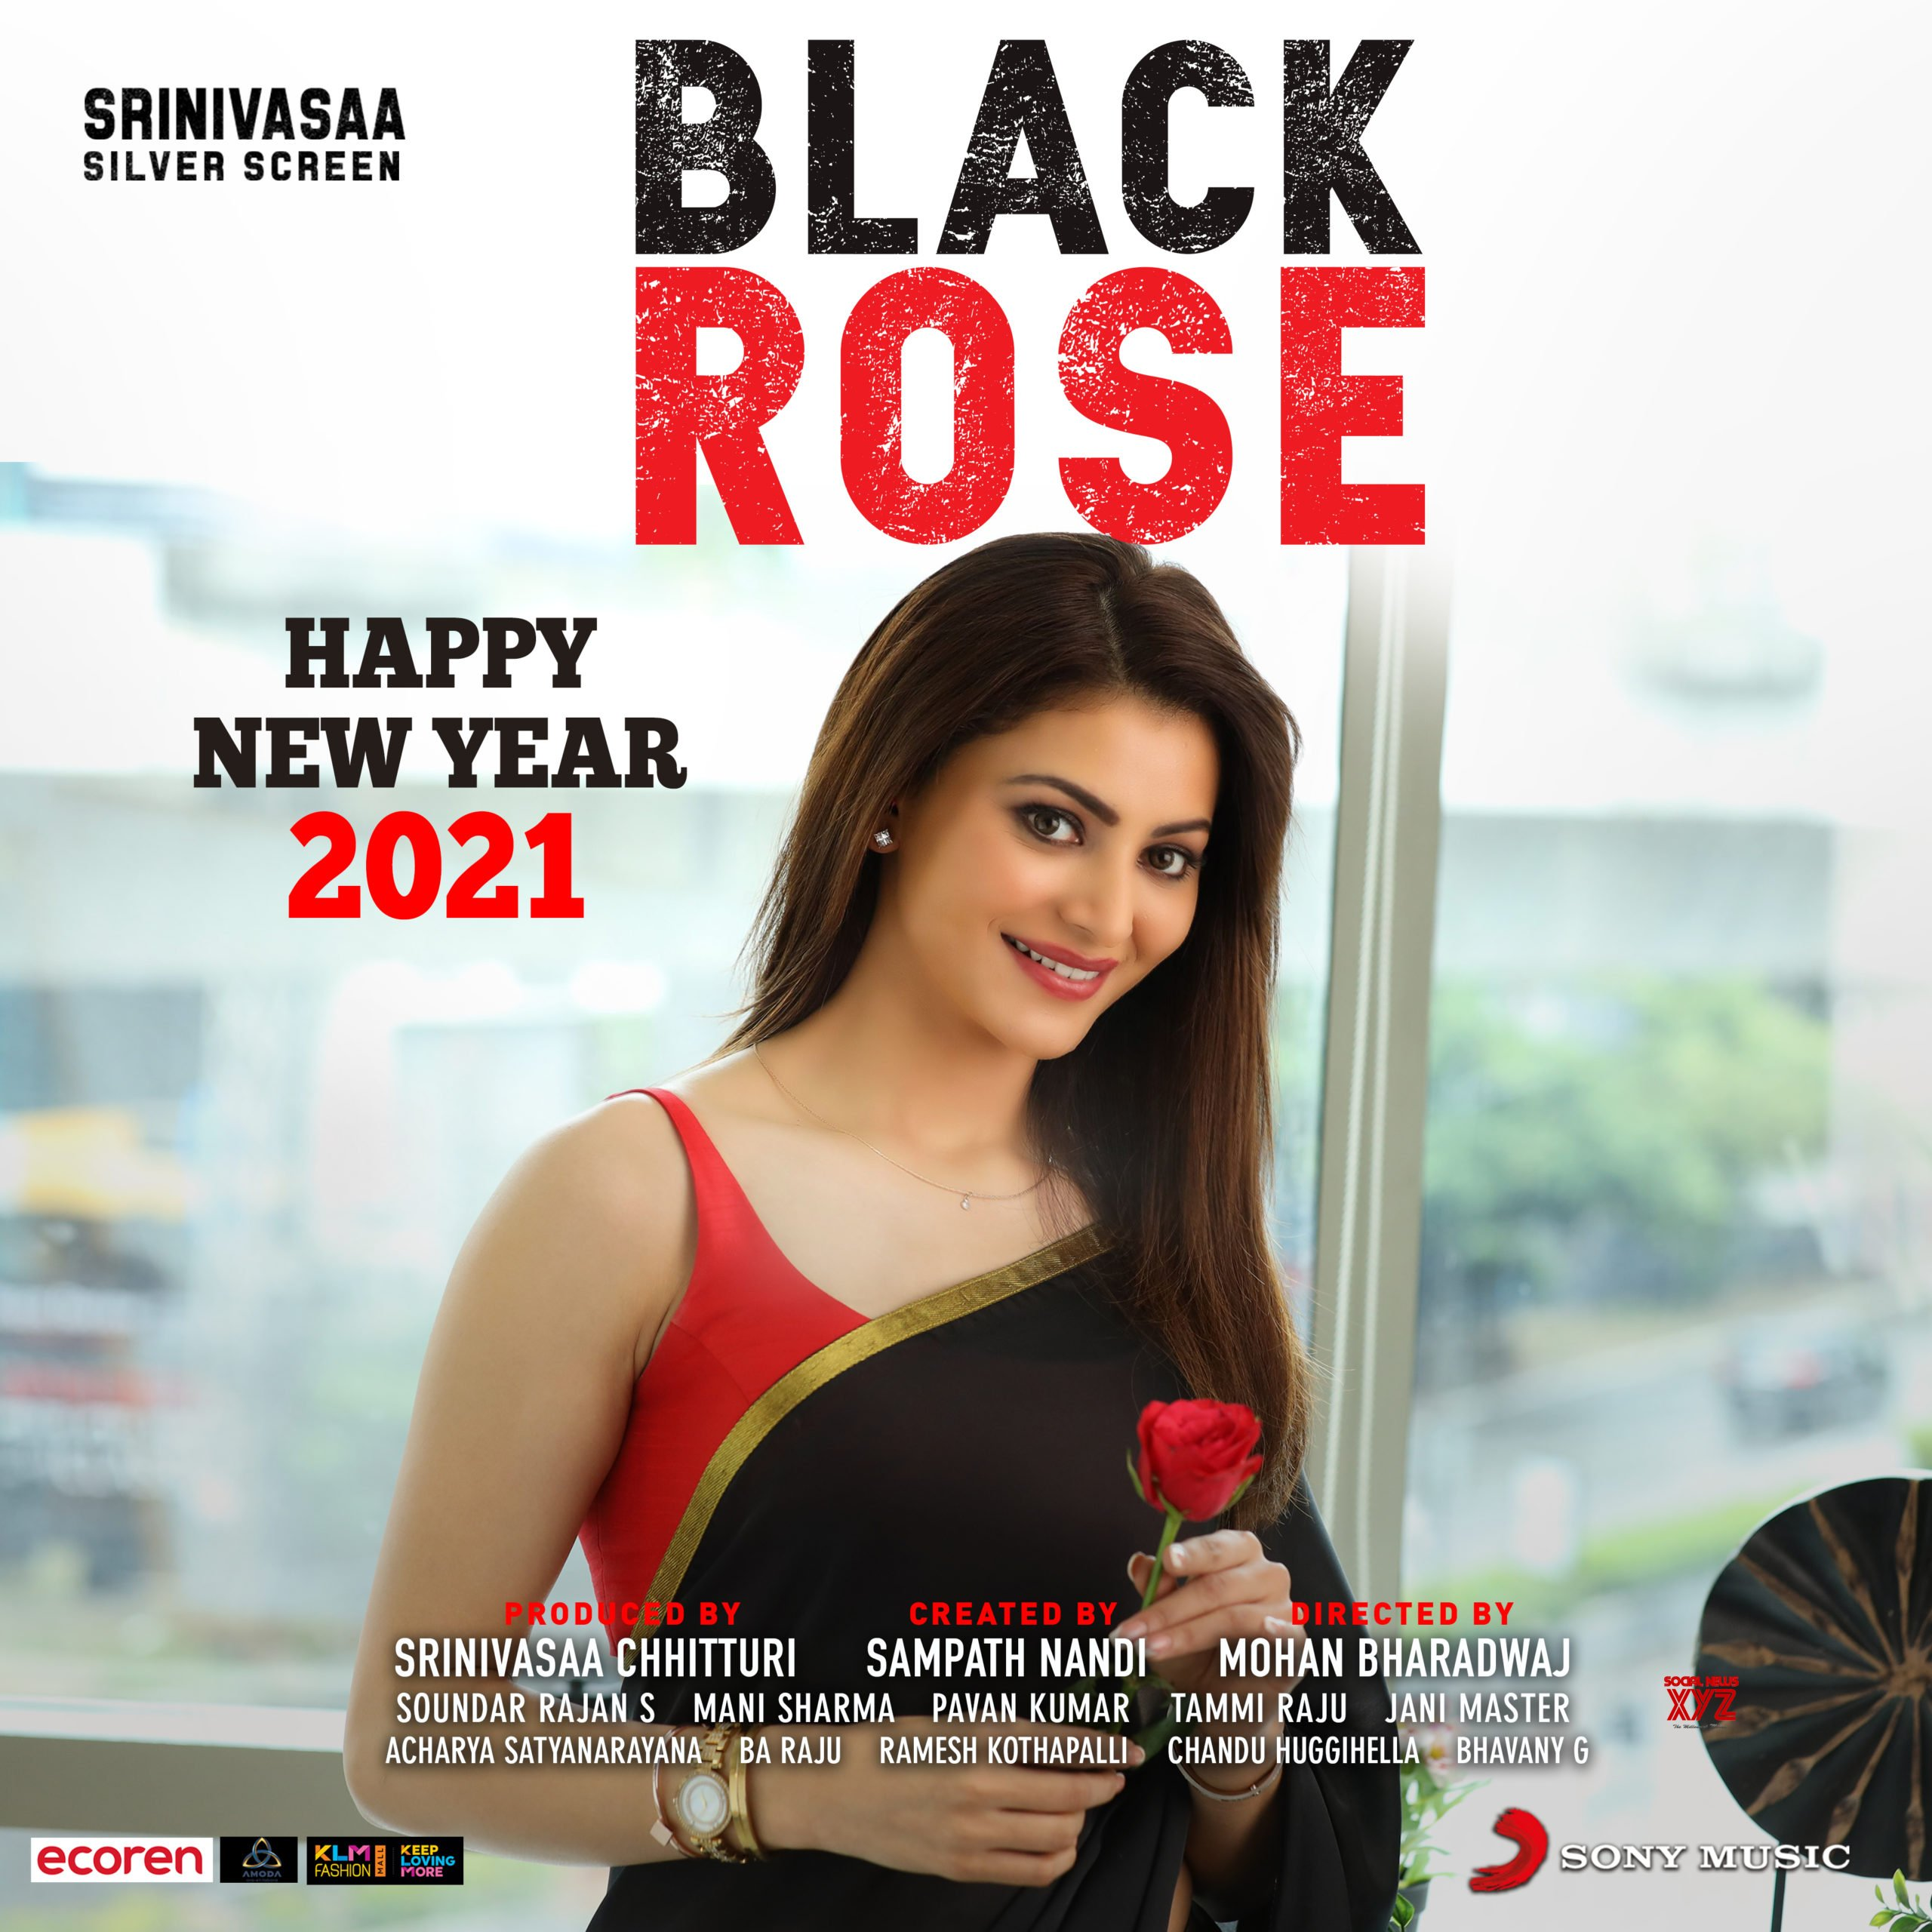 Black Rose (2021) Hindi 720p WEB-DL x264 AAC 1.2GB ESub